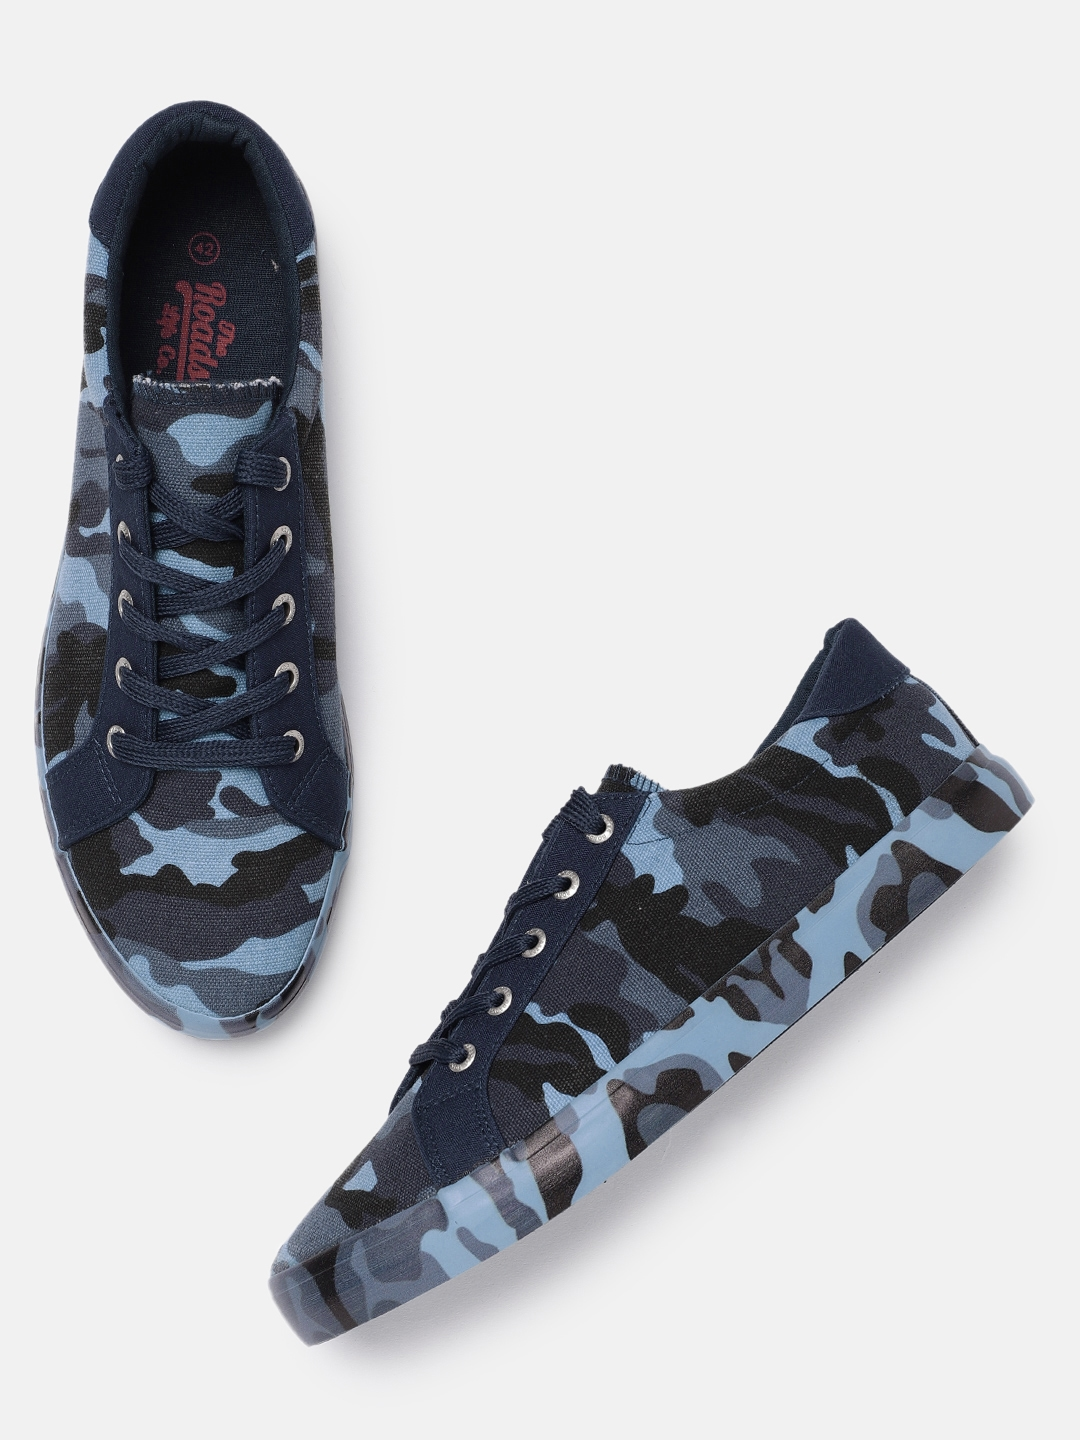 01d80727b0a5 Buy Roadster Men Navy Blue Camouflage Sneakers - Casual Shoes for ...